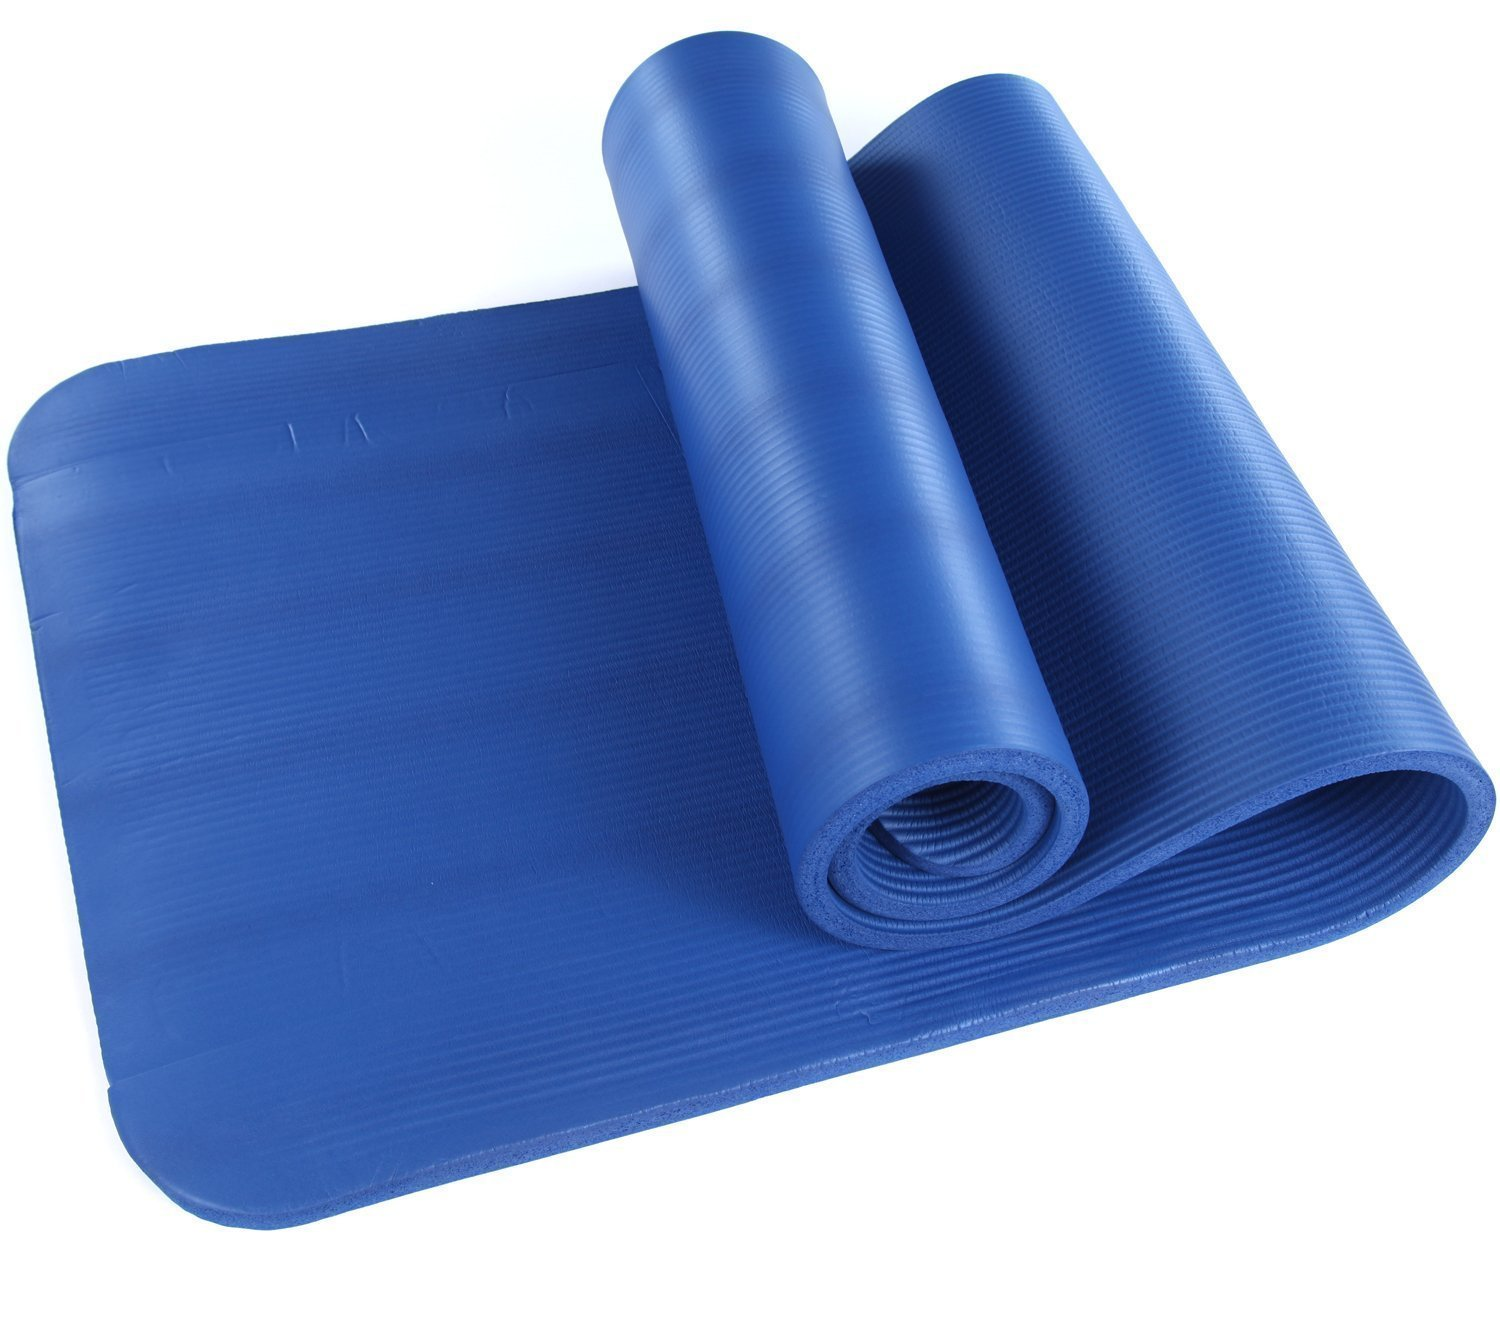 One Fit Extra Thick & Wide Yoga Mats 1/2-Inch Extra Thick 72